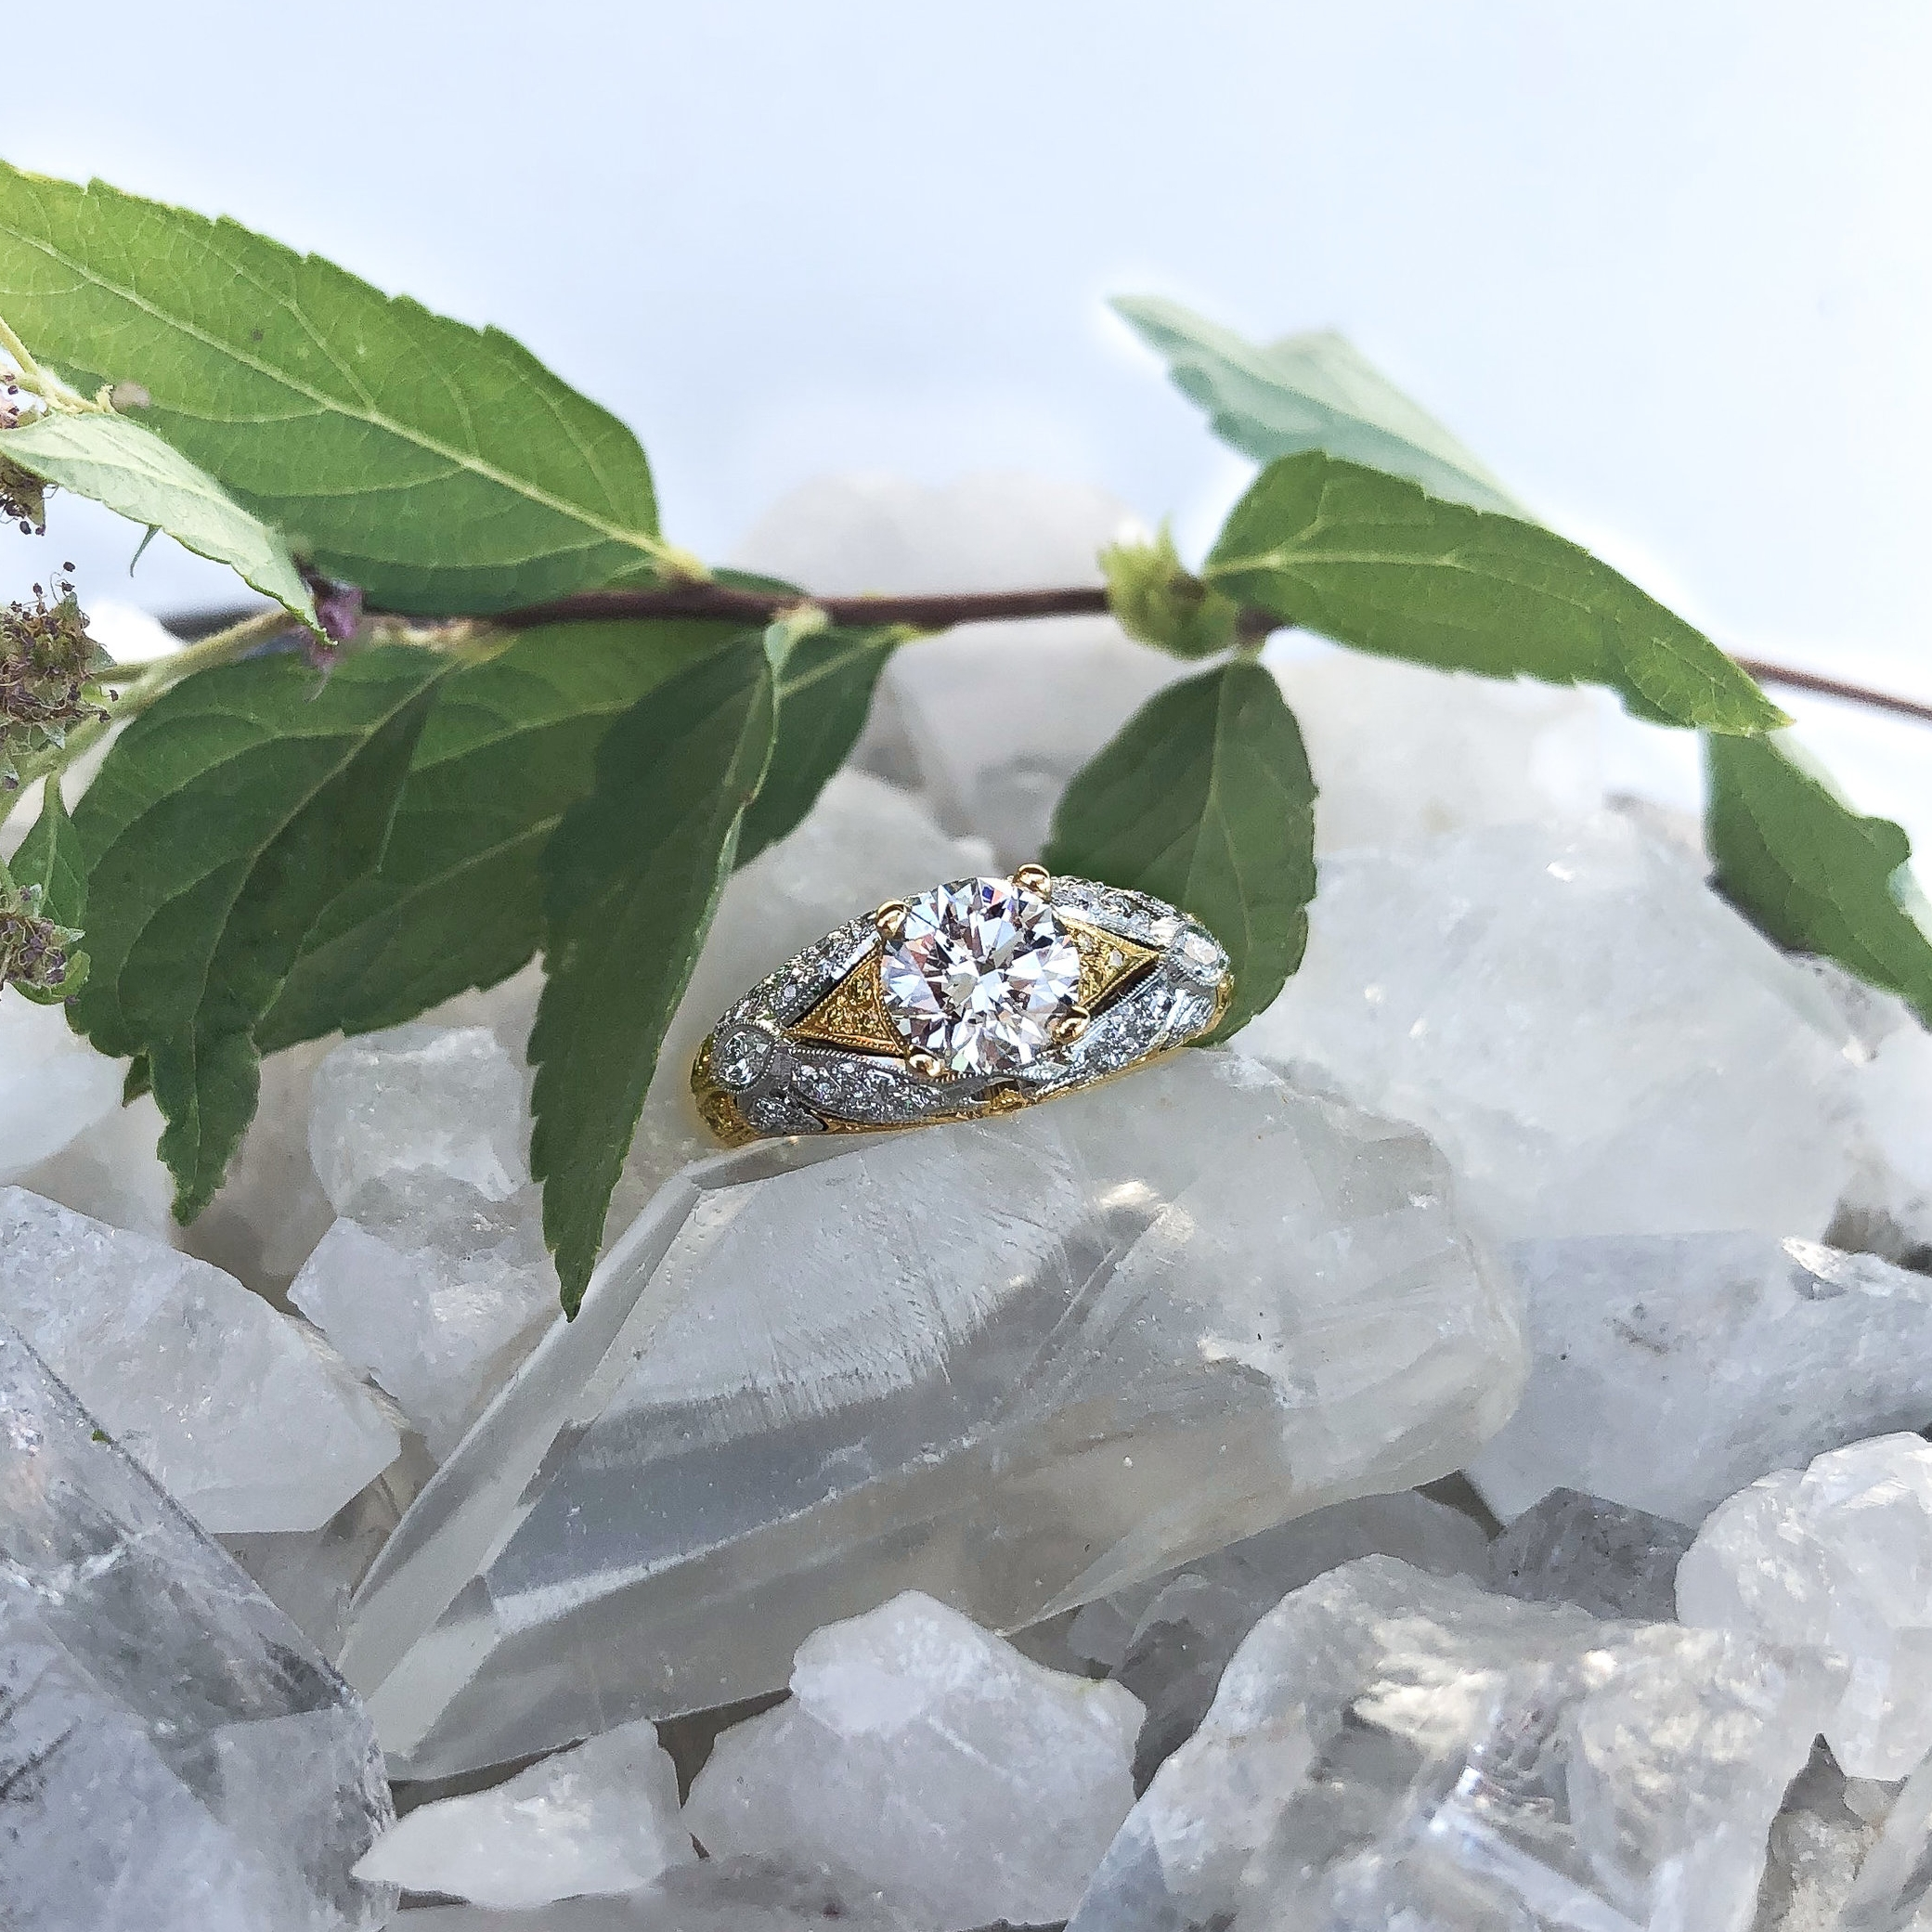 #7632 18k Yellow Gold & Platinum Ring Center Diamond 1.07 SI1 White Side Diamonds .57tcw  Yellow Side Diamonds .30tcw  Contact Us For Pricing